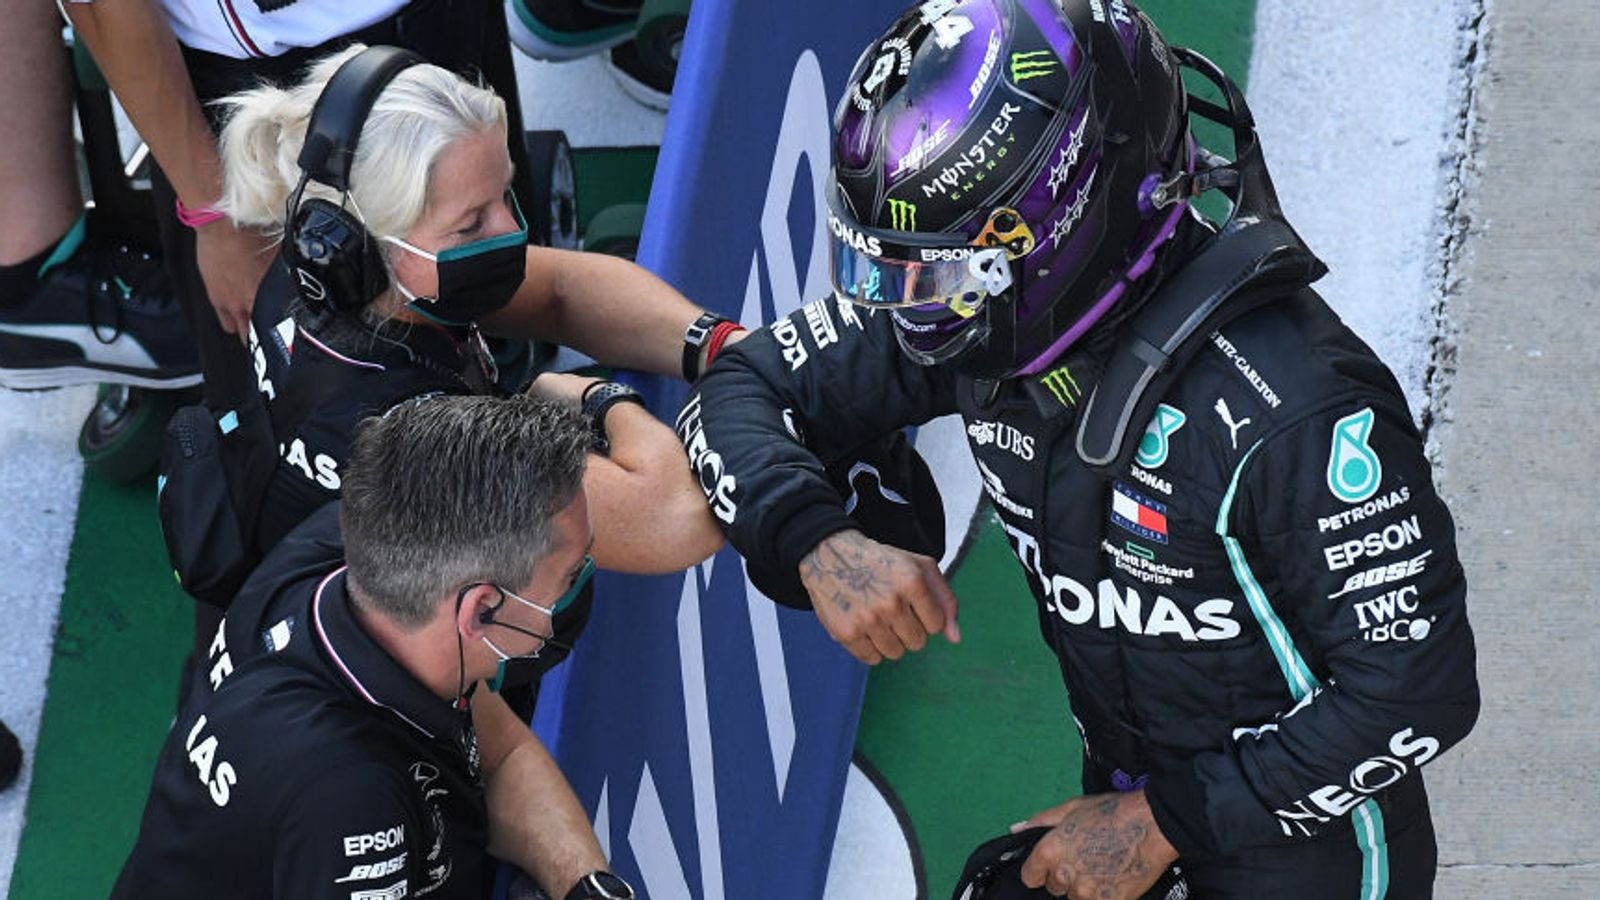 Lewis Hamilton faces post-Russian GP qualifying investigation